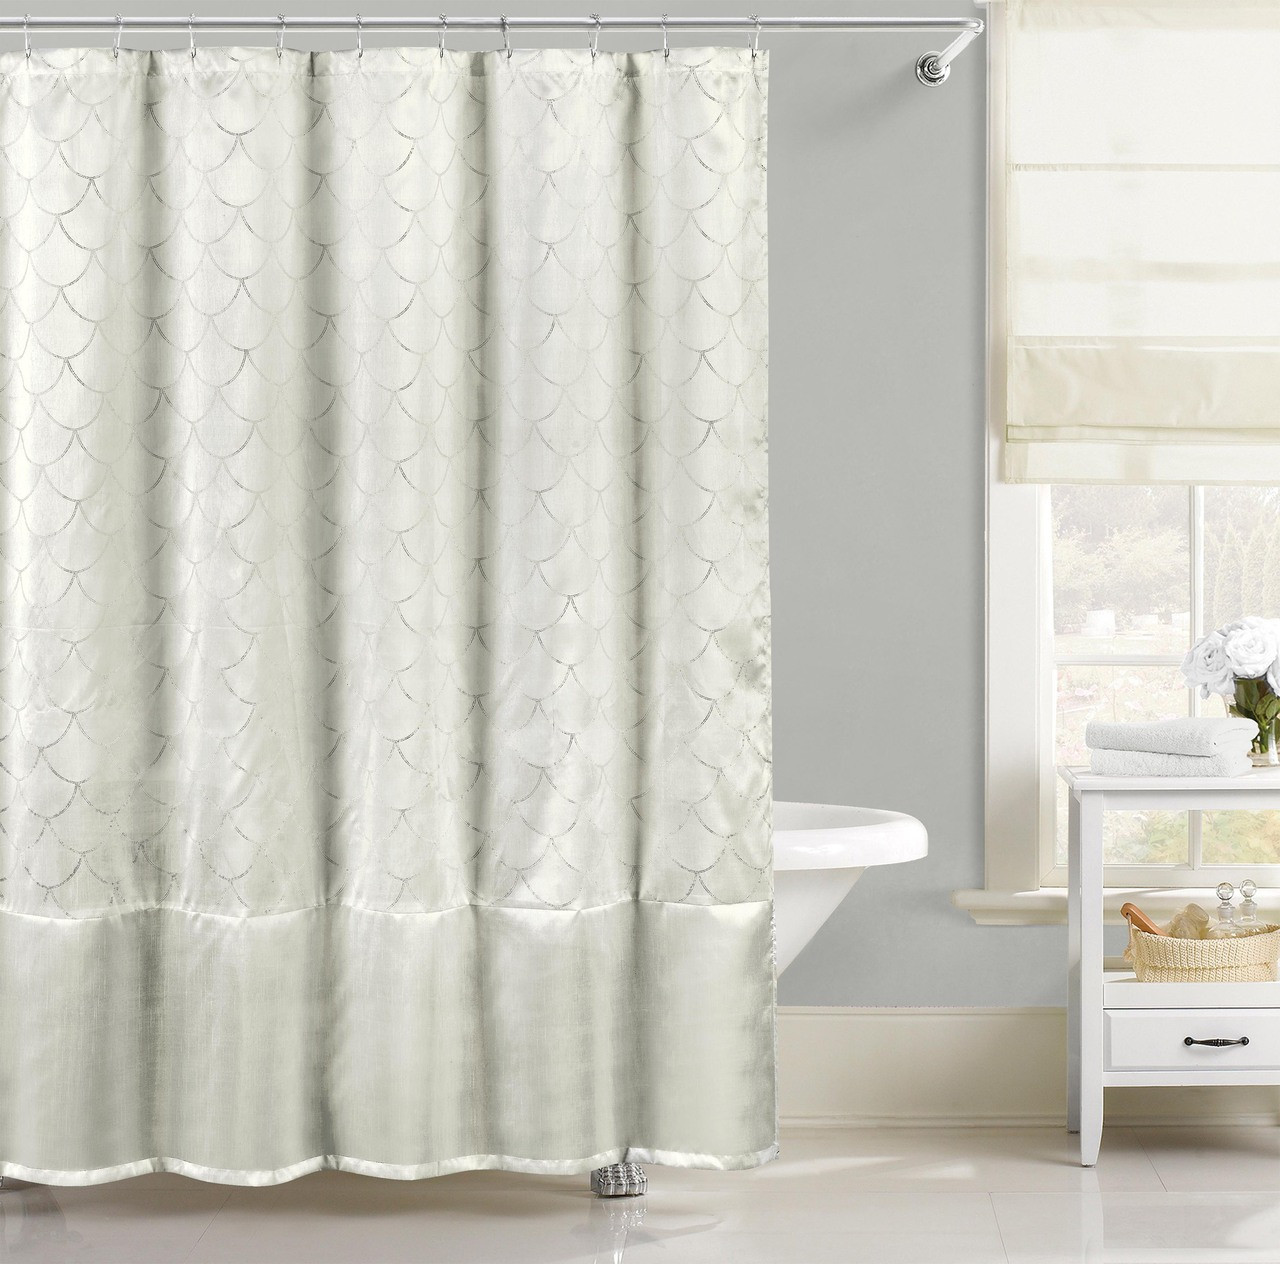 White Faux Silk Fabric Shower Curtain Pearl White Raised Pin Dot Fishscale Design